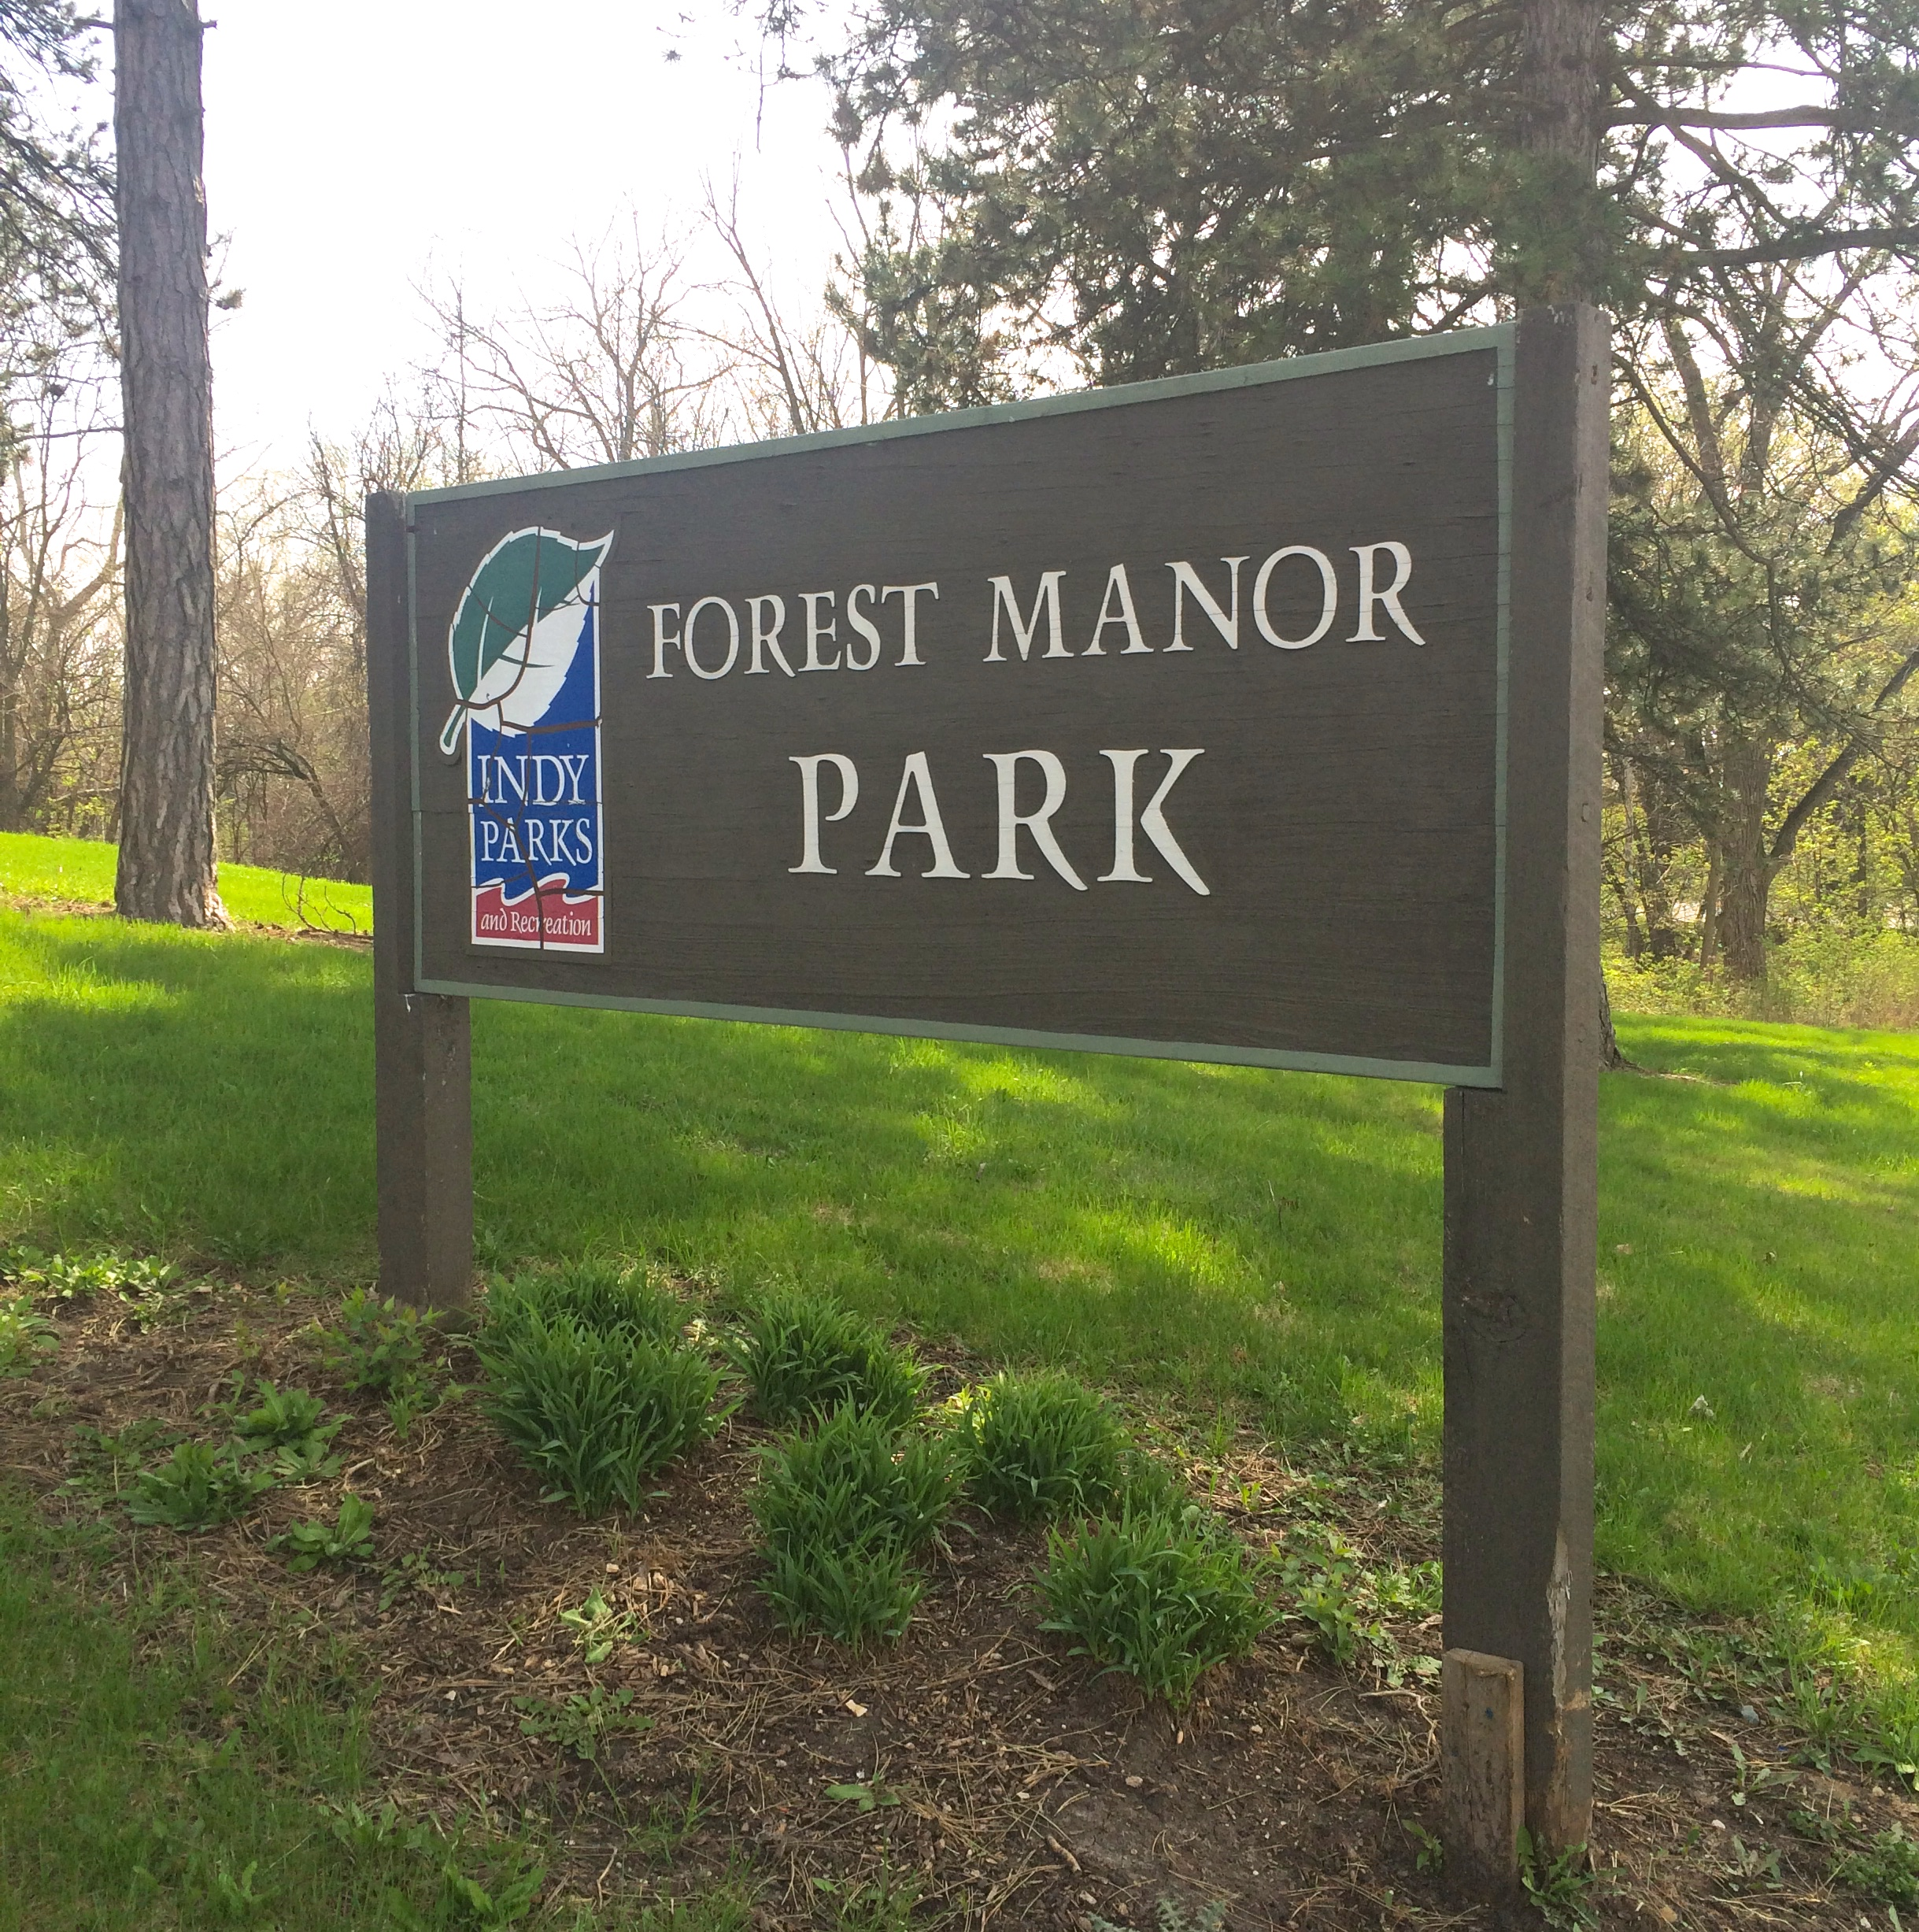 In The Park: Forest Manor Park